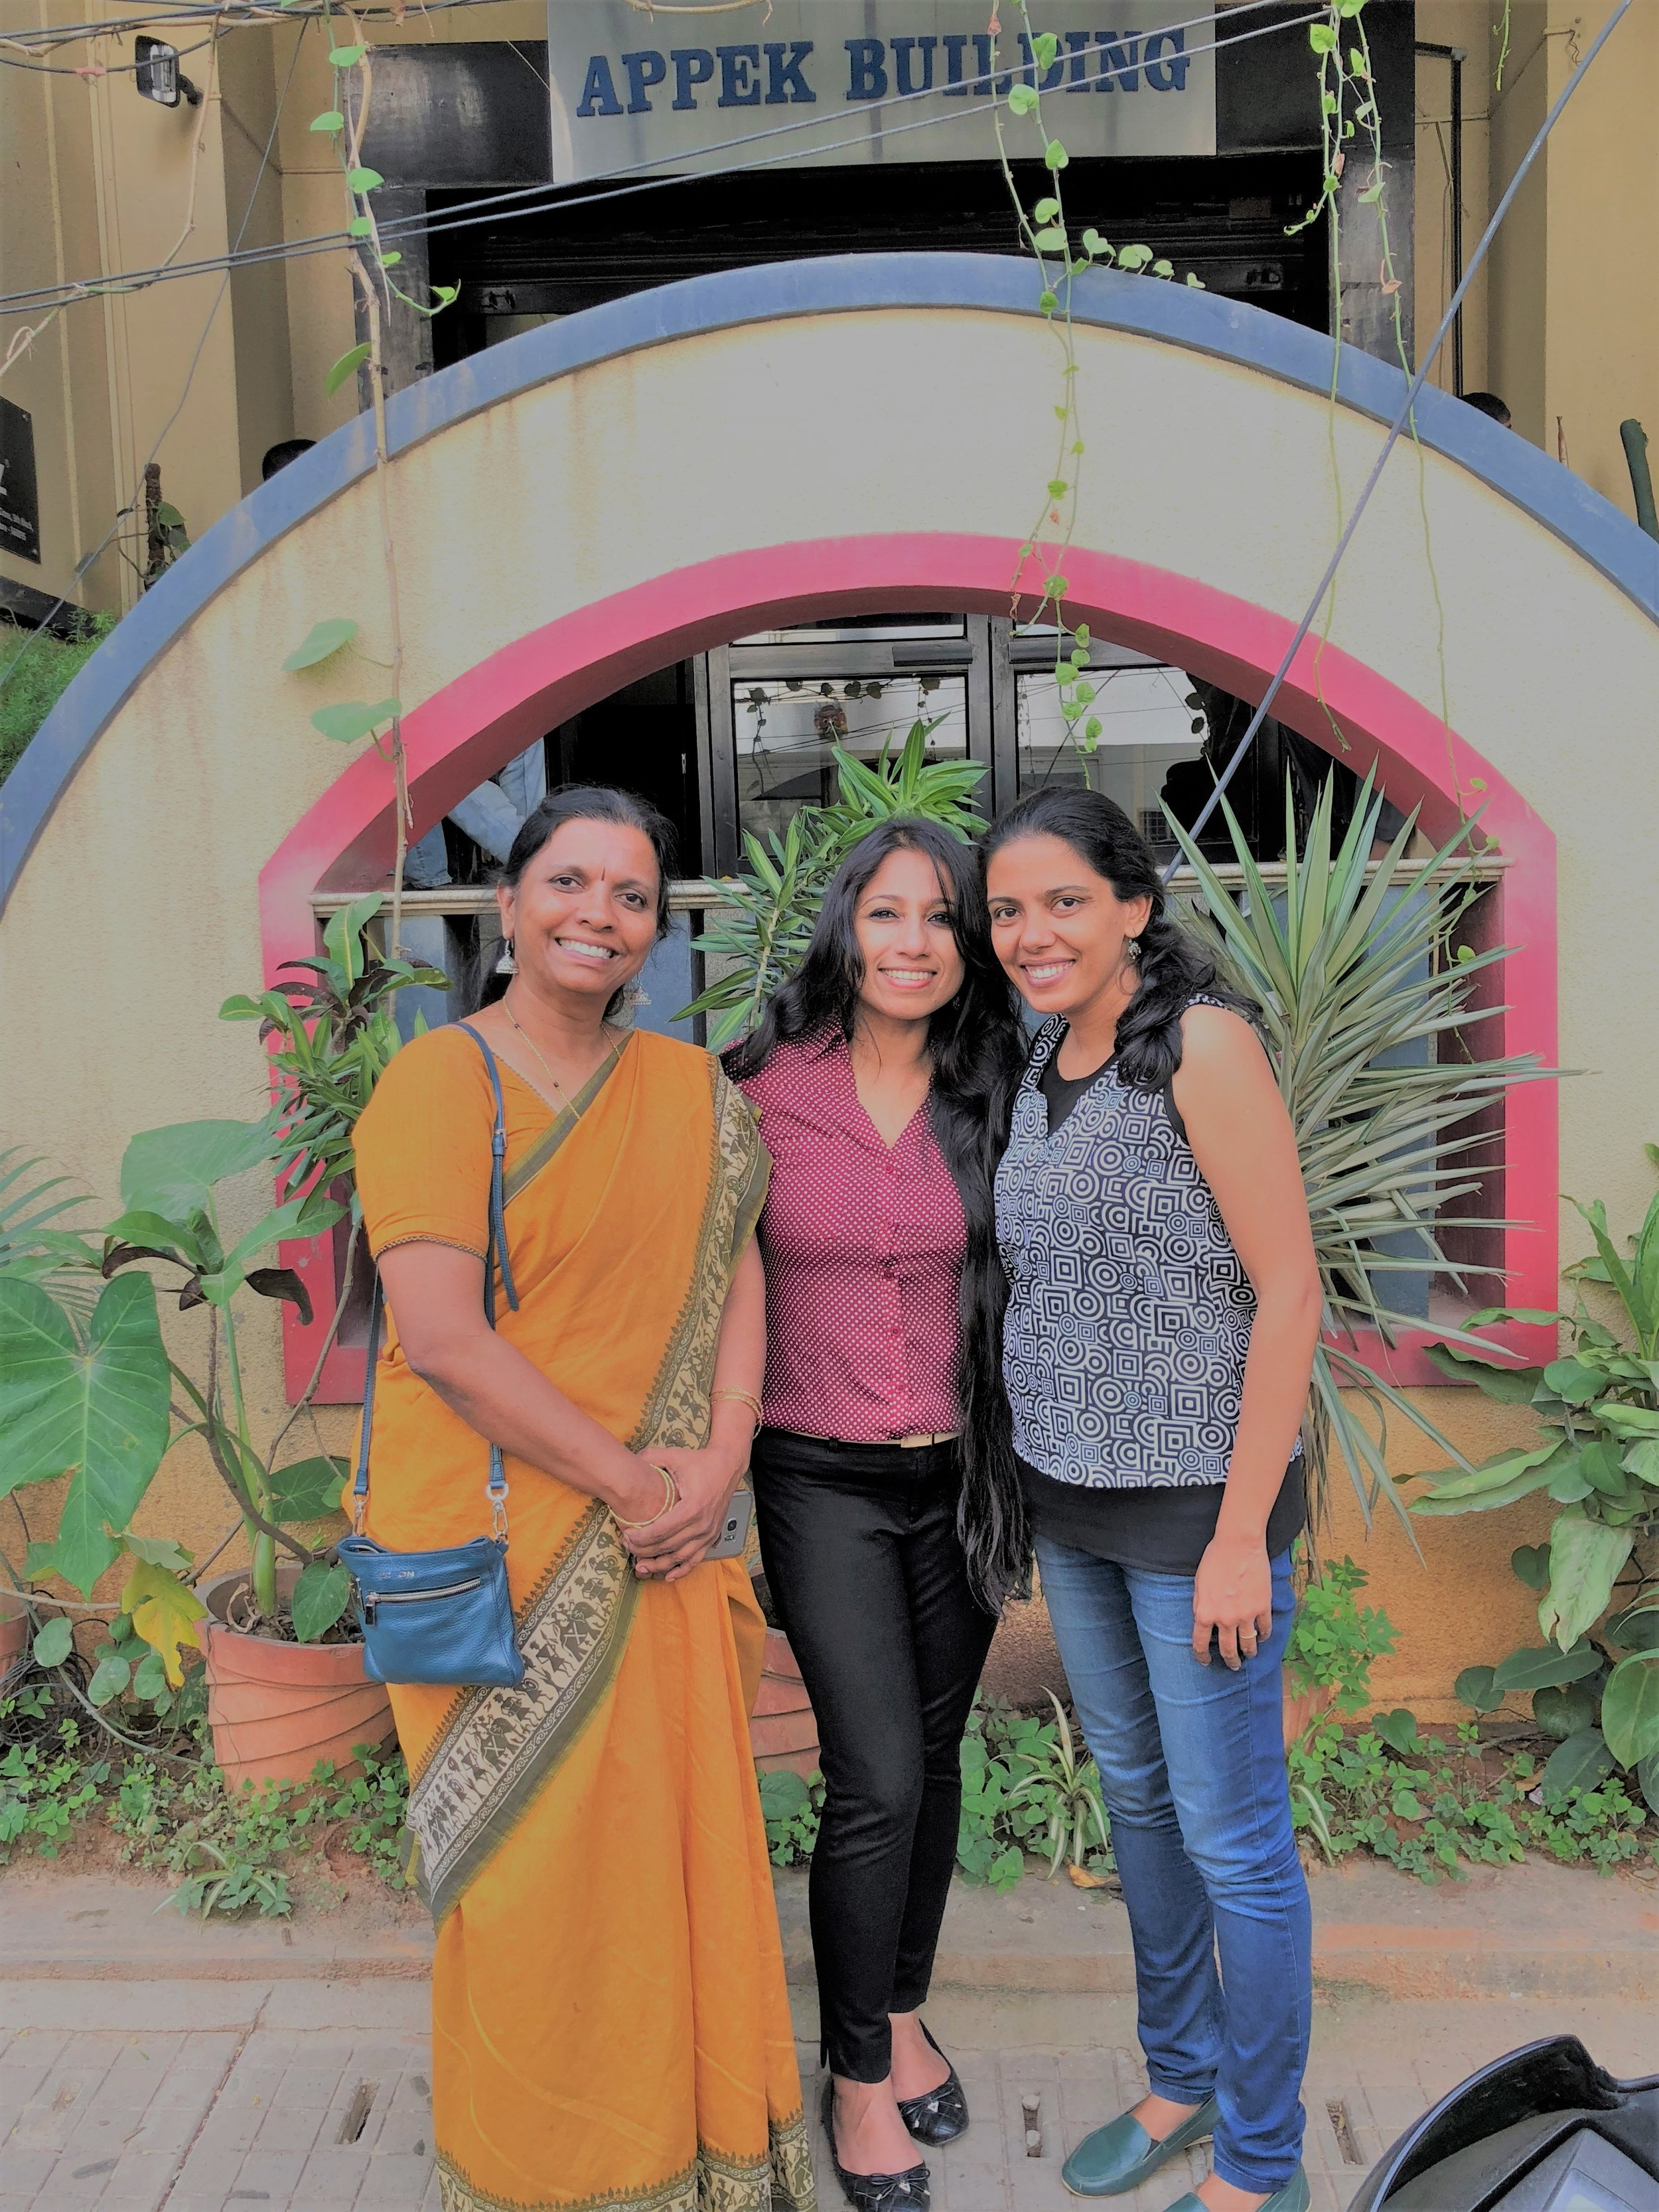 Collaborator: Dr. Geetha Manjunath and Nidhi Mathur (COO, Niramai): I am extremely thankful to Devaraj Das Devaraj Das for having connected me to Dr. Manjunath. Dr. Geetha Manjunath is the Co-founder and CEO of NIRAMAI Health Analytix, a startup developing a novel non-invasive Breast Cancer Screening Solution using Artificial Intelligence. NIRAMAI is developing a low cost, portable, non-contact, non-invasive, radiation-free solution for detecting early stage breast cancer in women of all age groups (and breast densities).  http://niramai.com  . We are collaborating from research perspective and also in educating women with materials from Breast Cancer Hub.